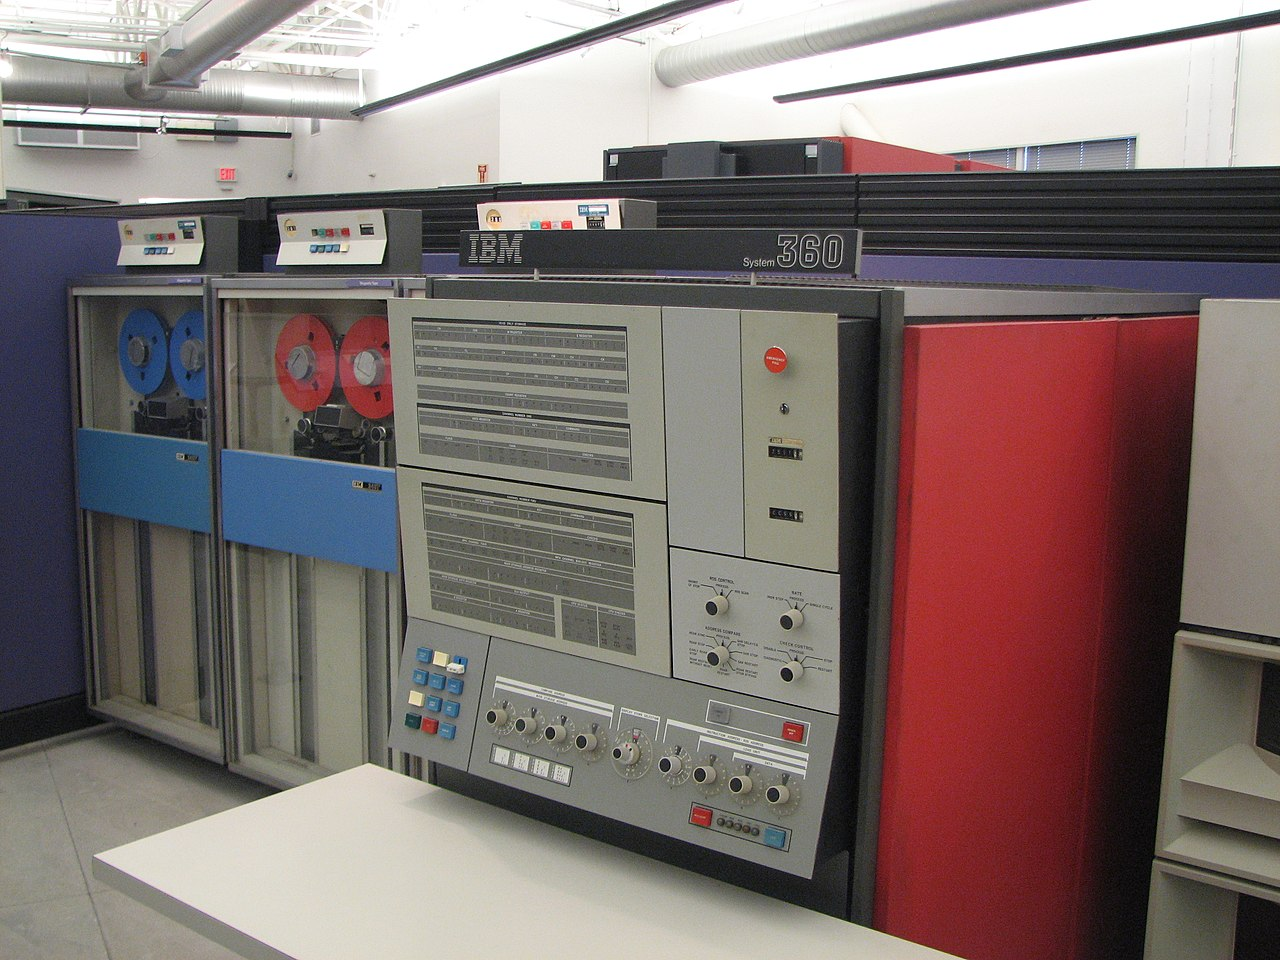 Computer room with multiple computer cabinets and operating panel